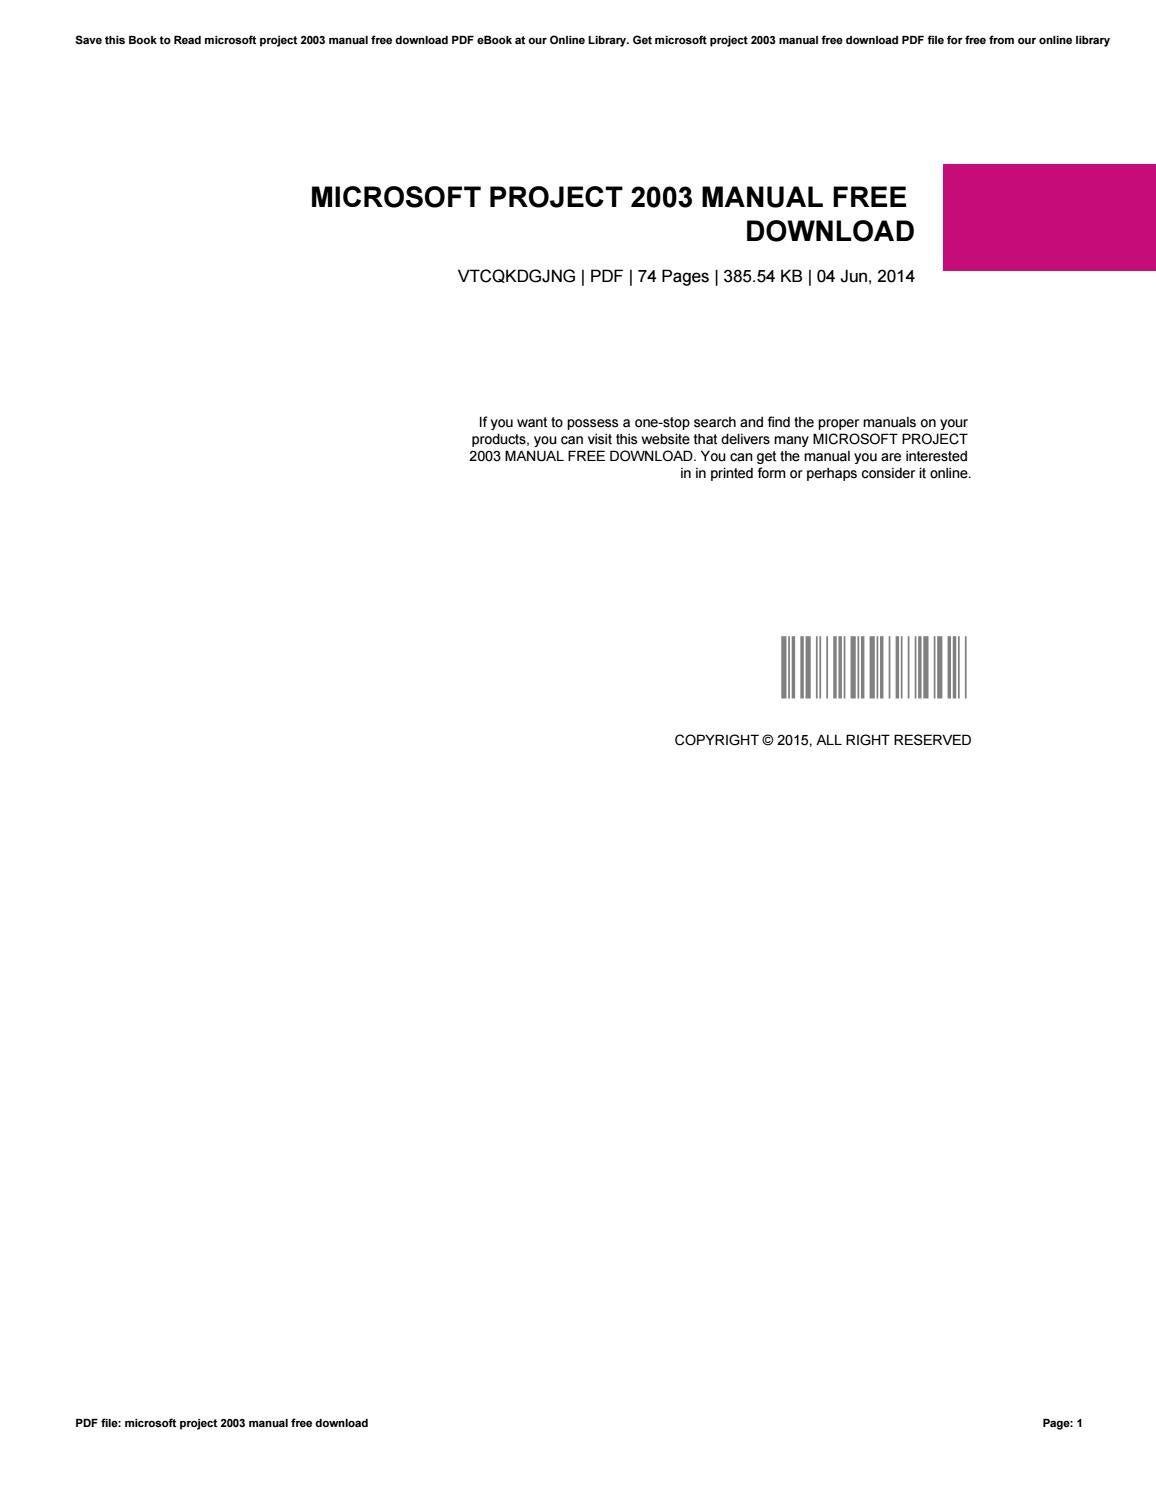 Microsoft project 2003 tutorial free download.